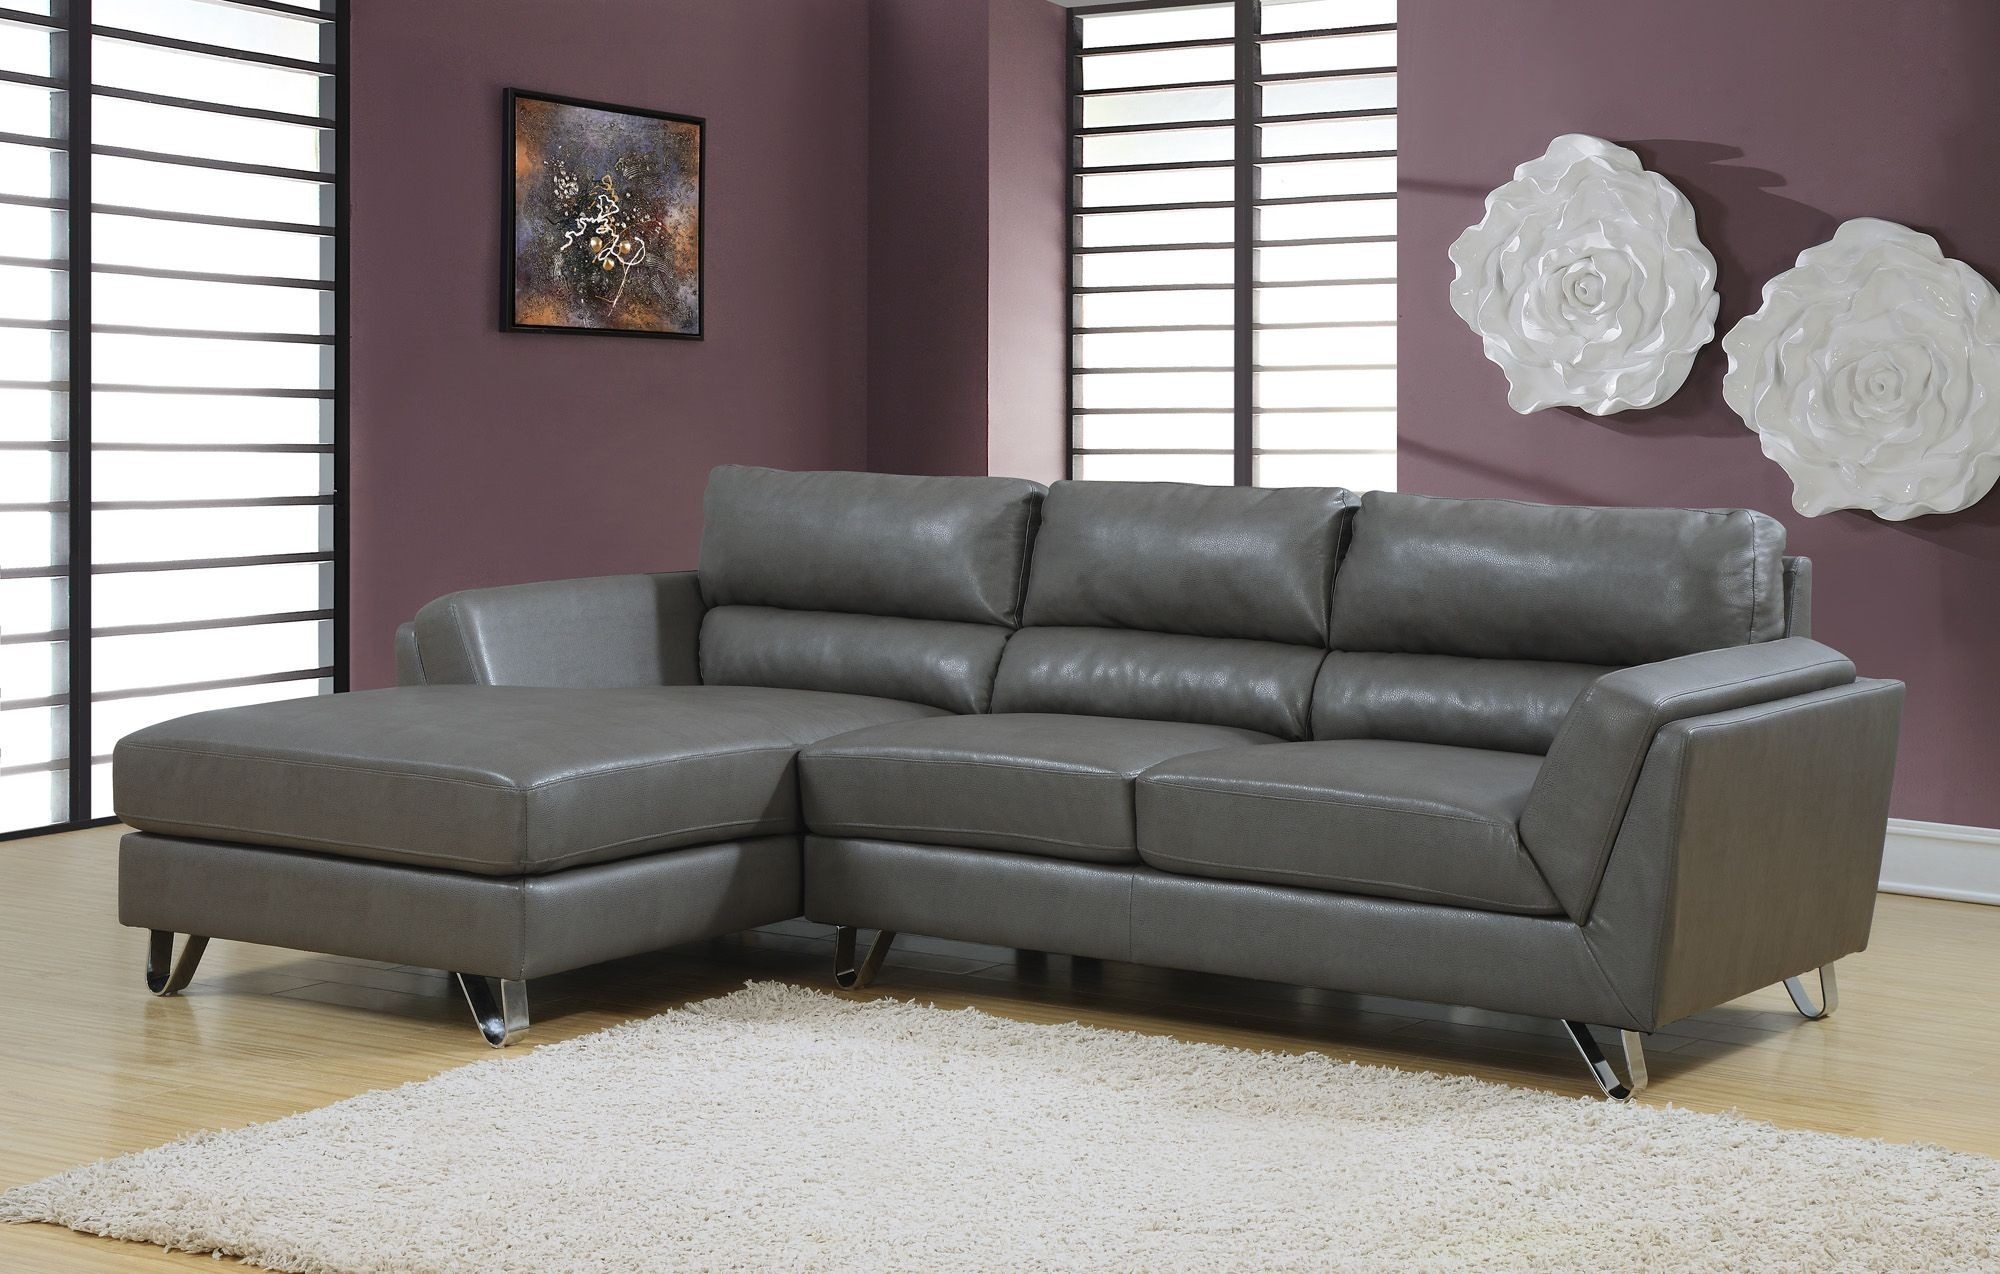 Gray Sectional Sofas Charcoal Sofa Match Frankfort Convertible Grey inside Sectional Sofas in Stock (Image 3 of 10)